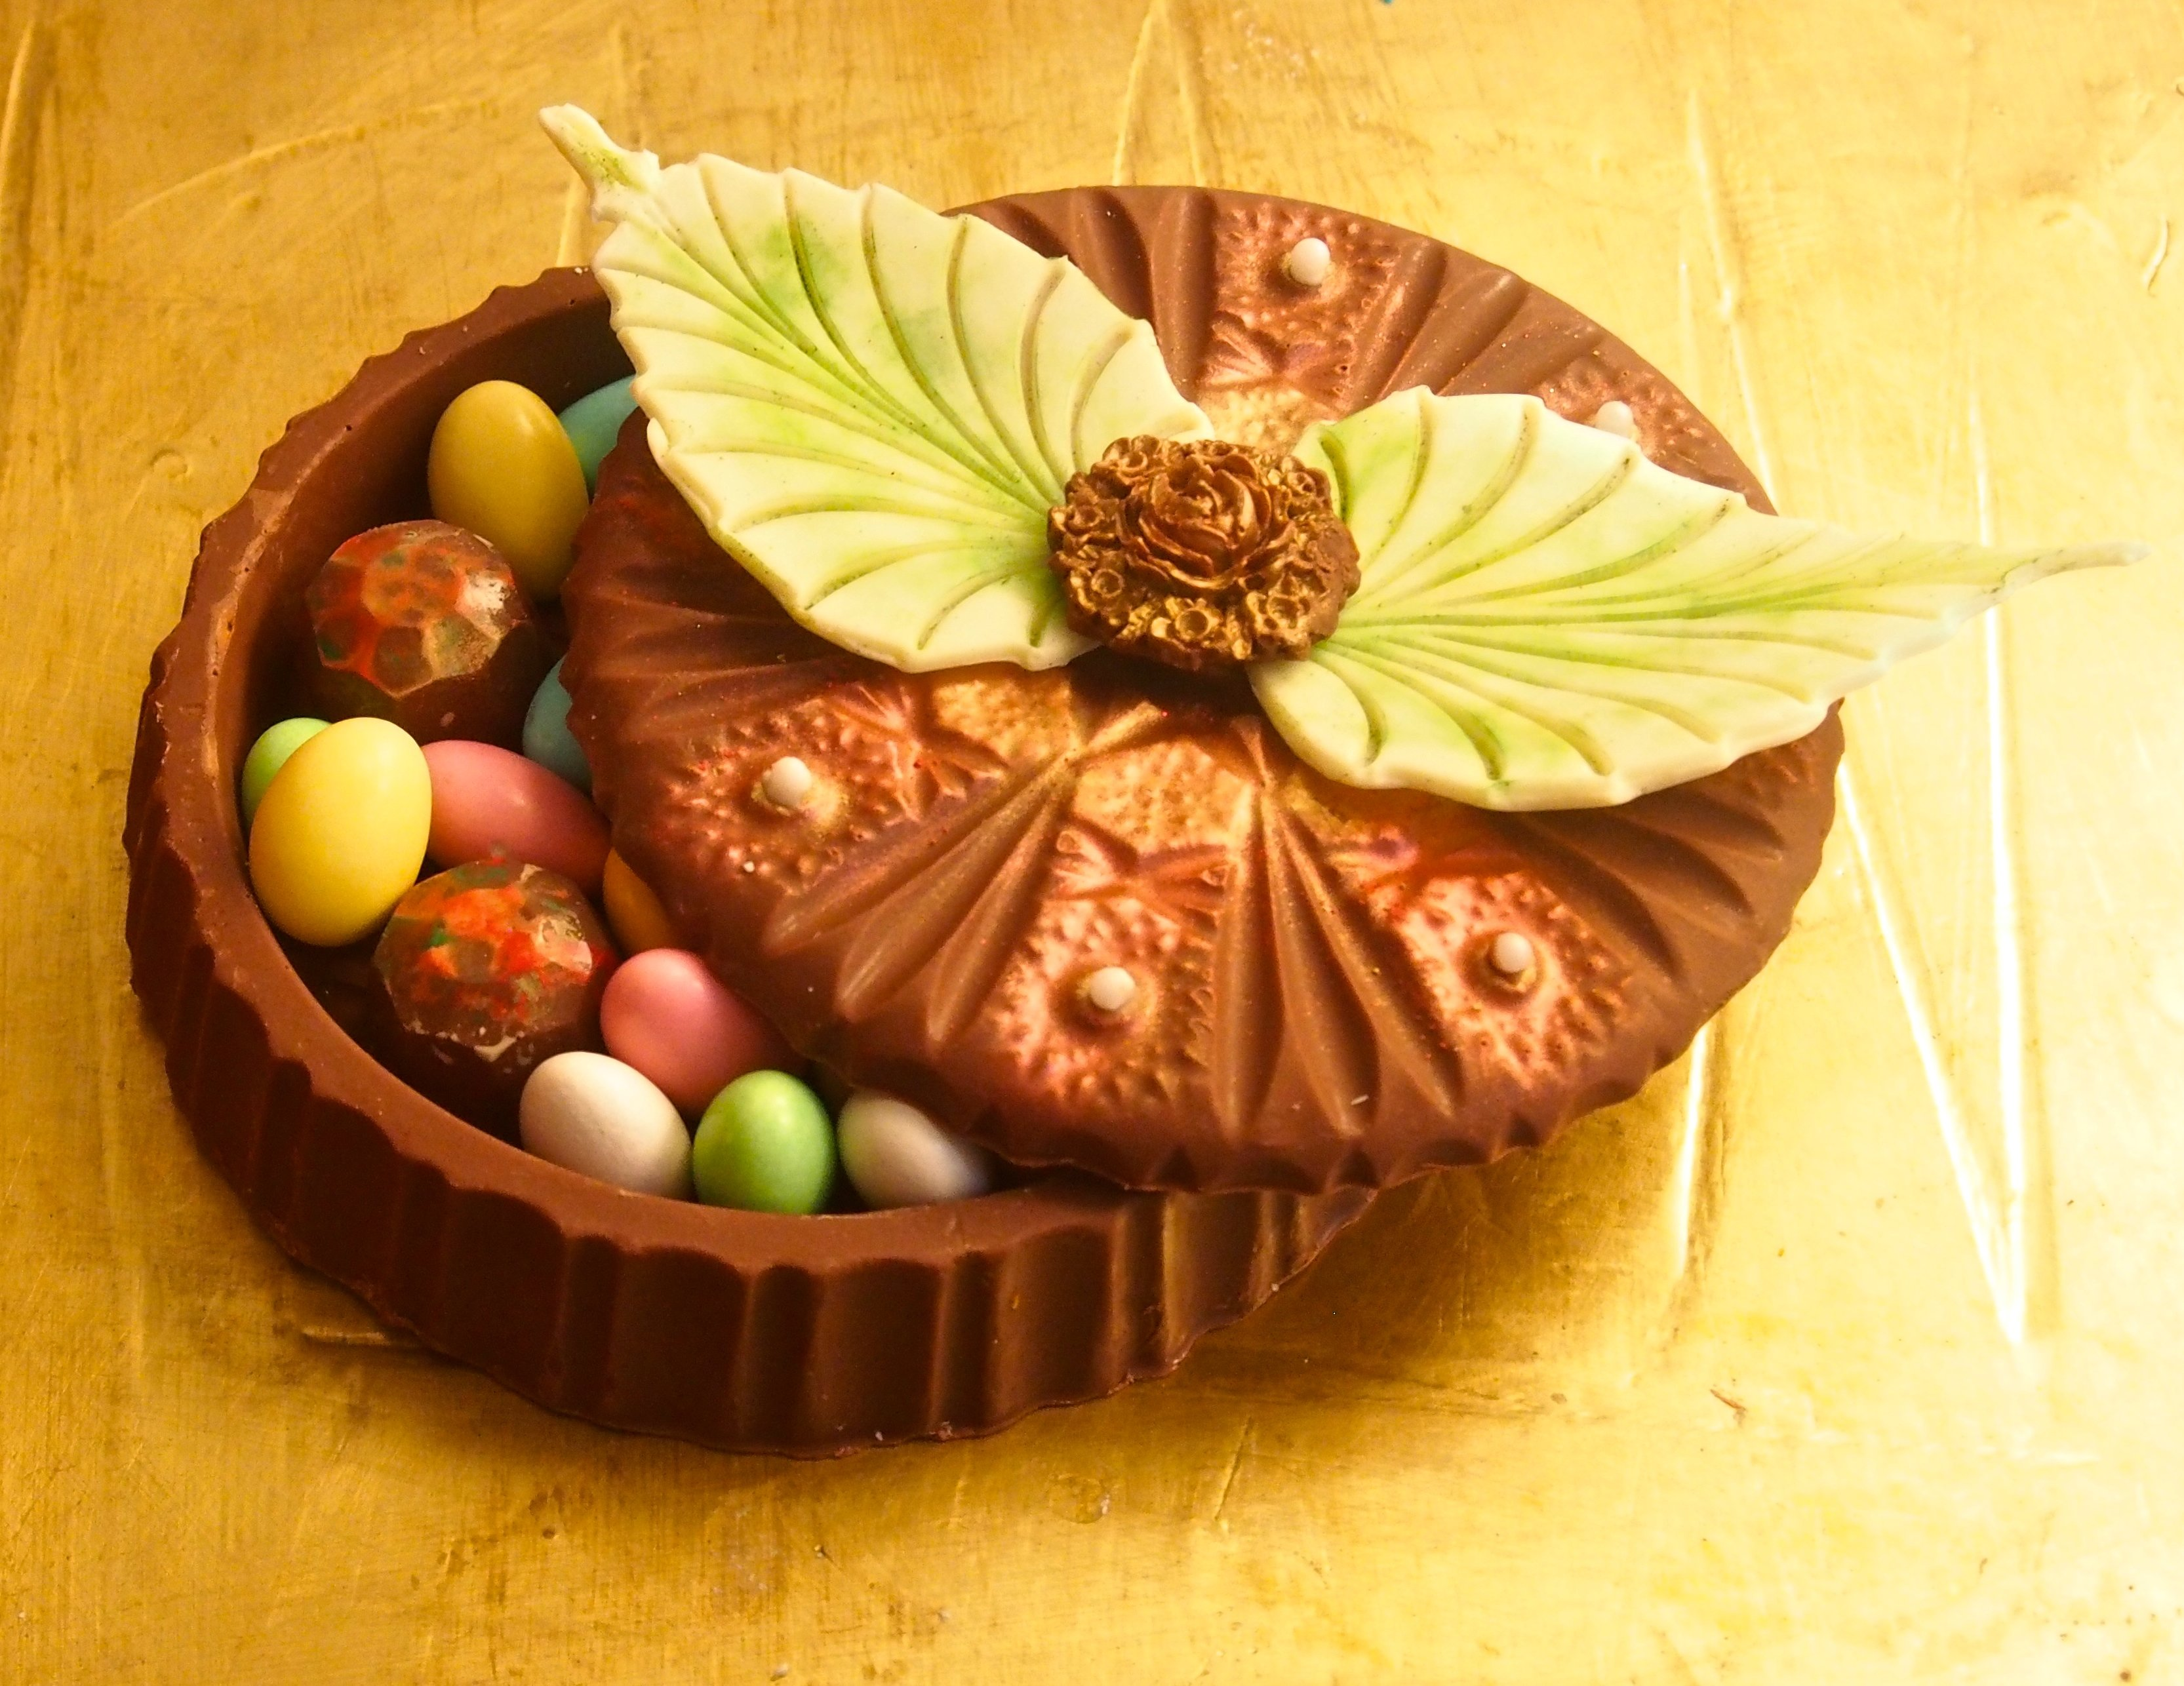 life is a box of chocolate Box of chocolates represents results of our choices there are numerous choices that we make on daily basis, and then we live with those results if you take a piece of chocolate, it looks ordinary from the outside, but only when you break it (ma.